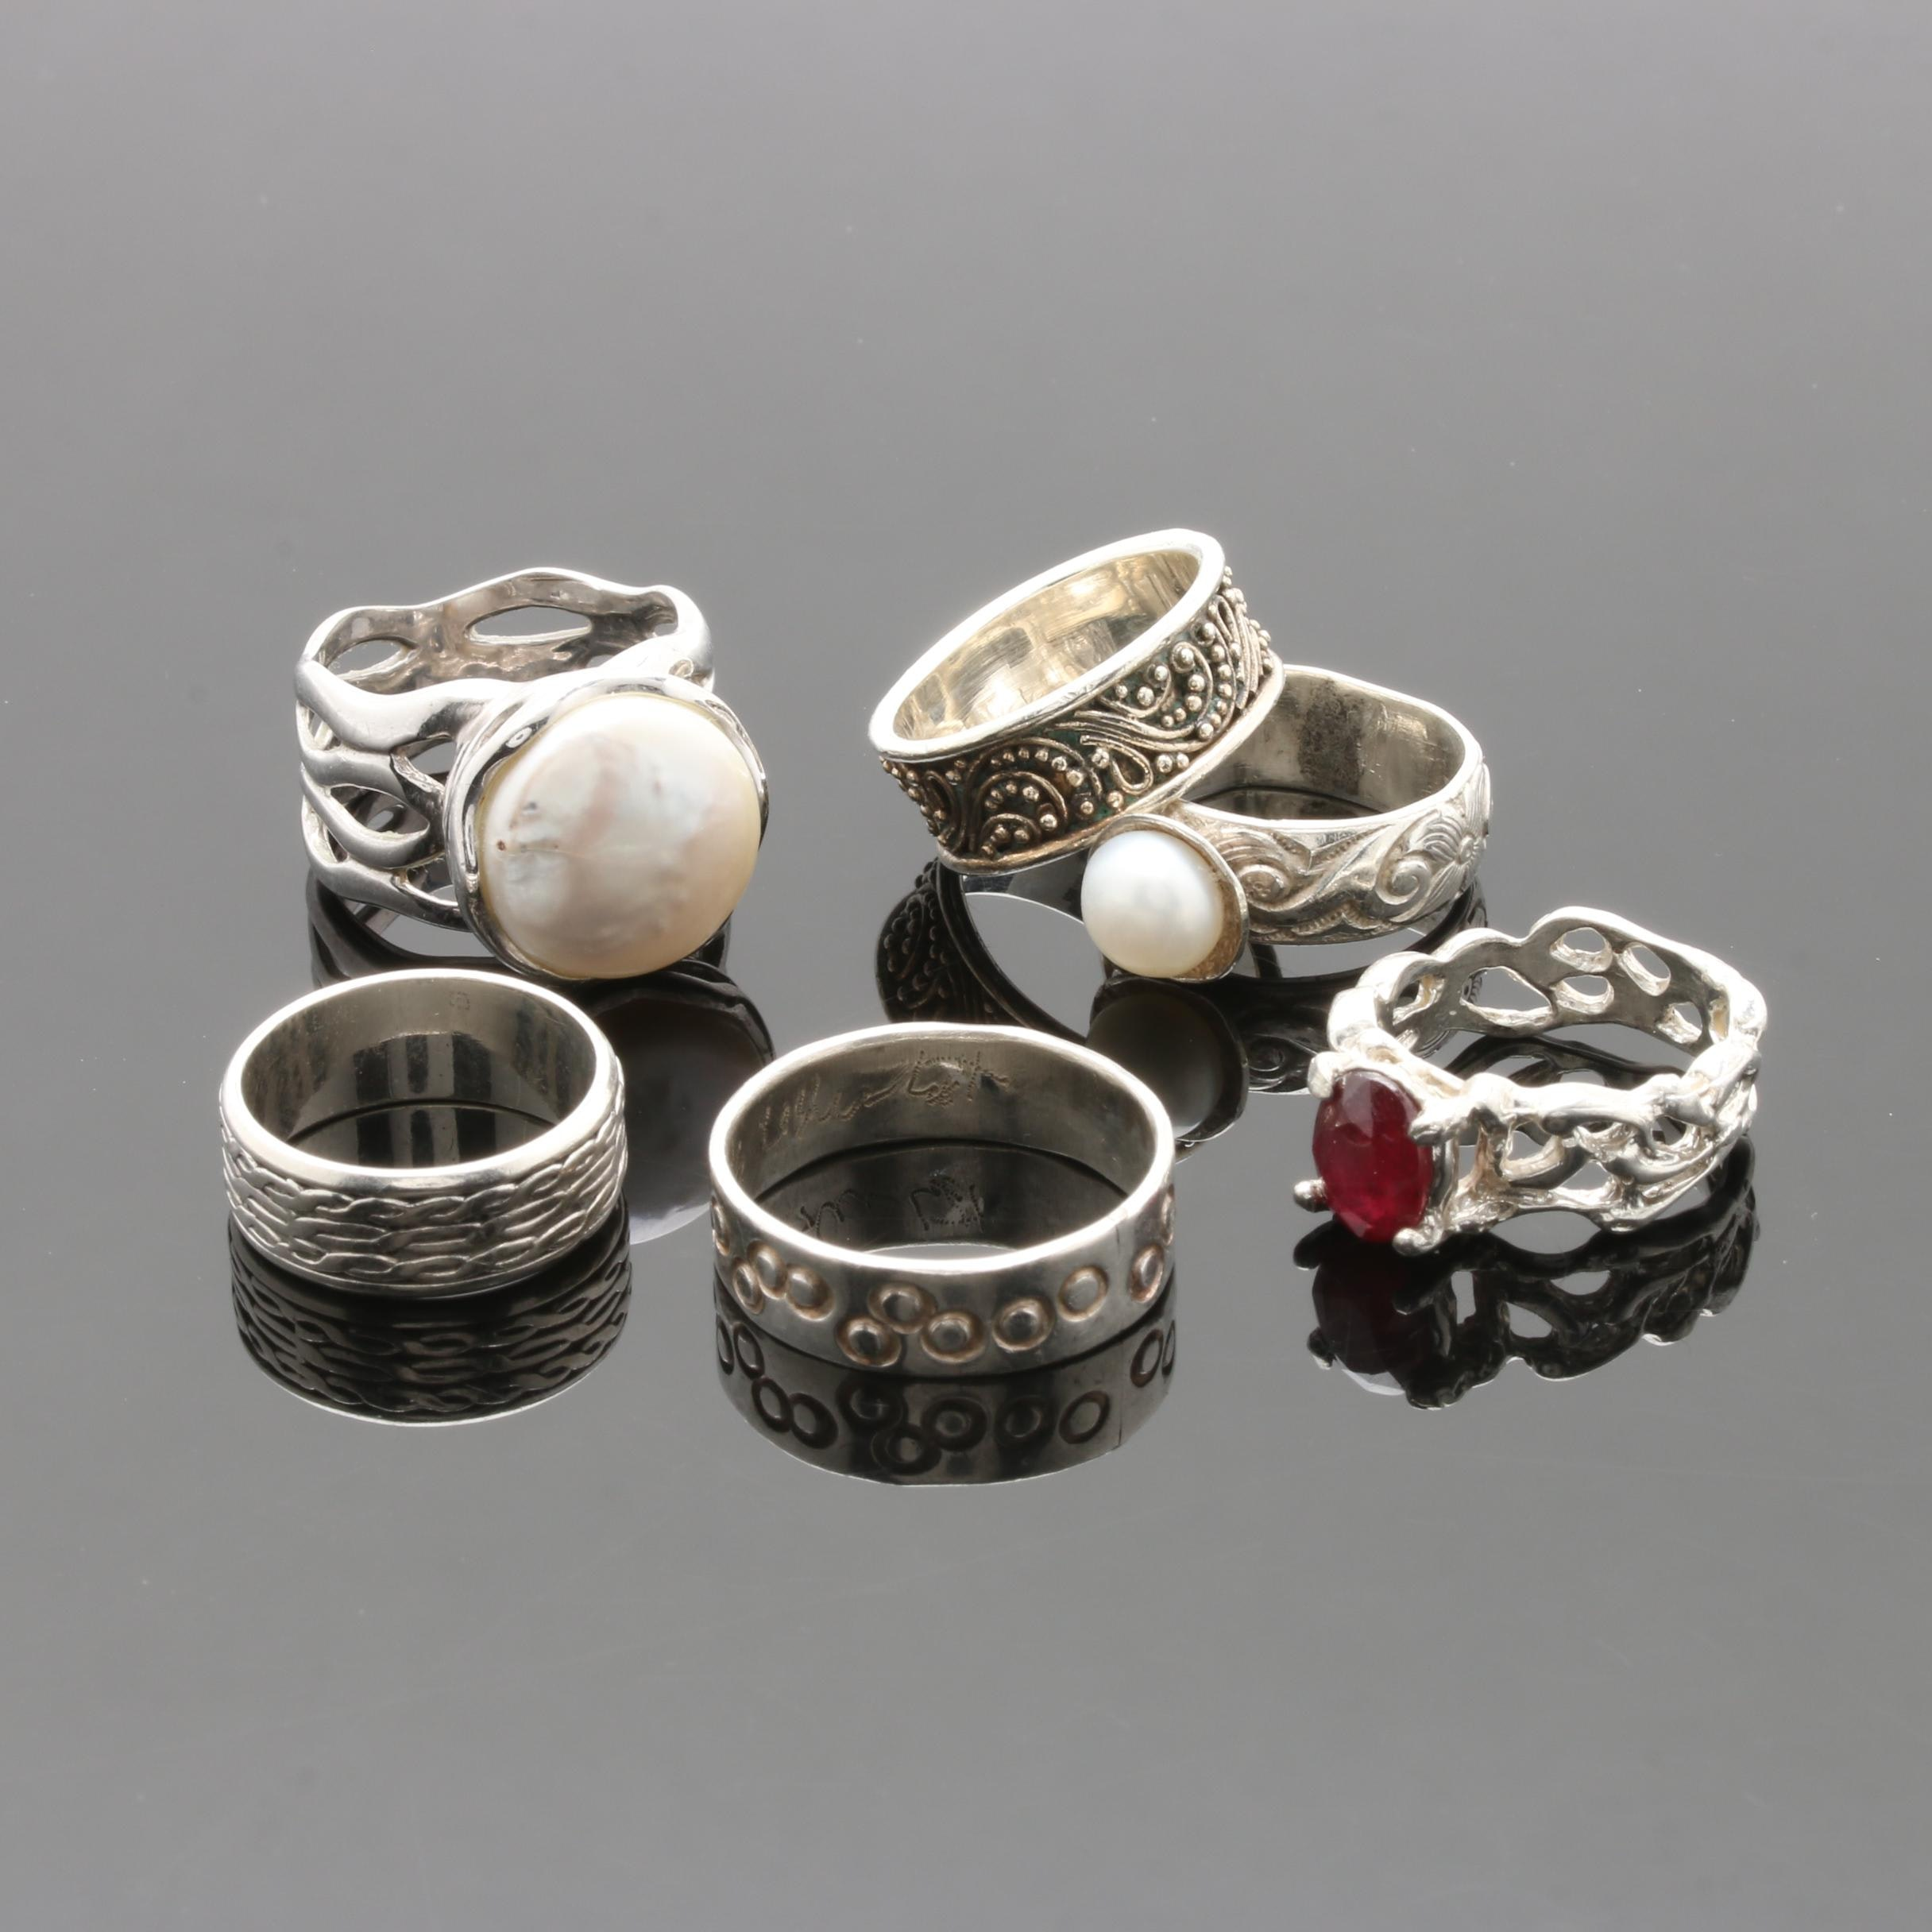 Assorted Sterling and Fine Silver Rings Featuring Ruby and Cultured Pearl